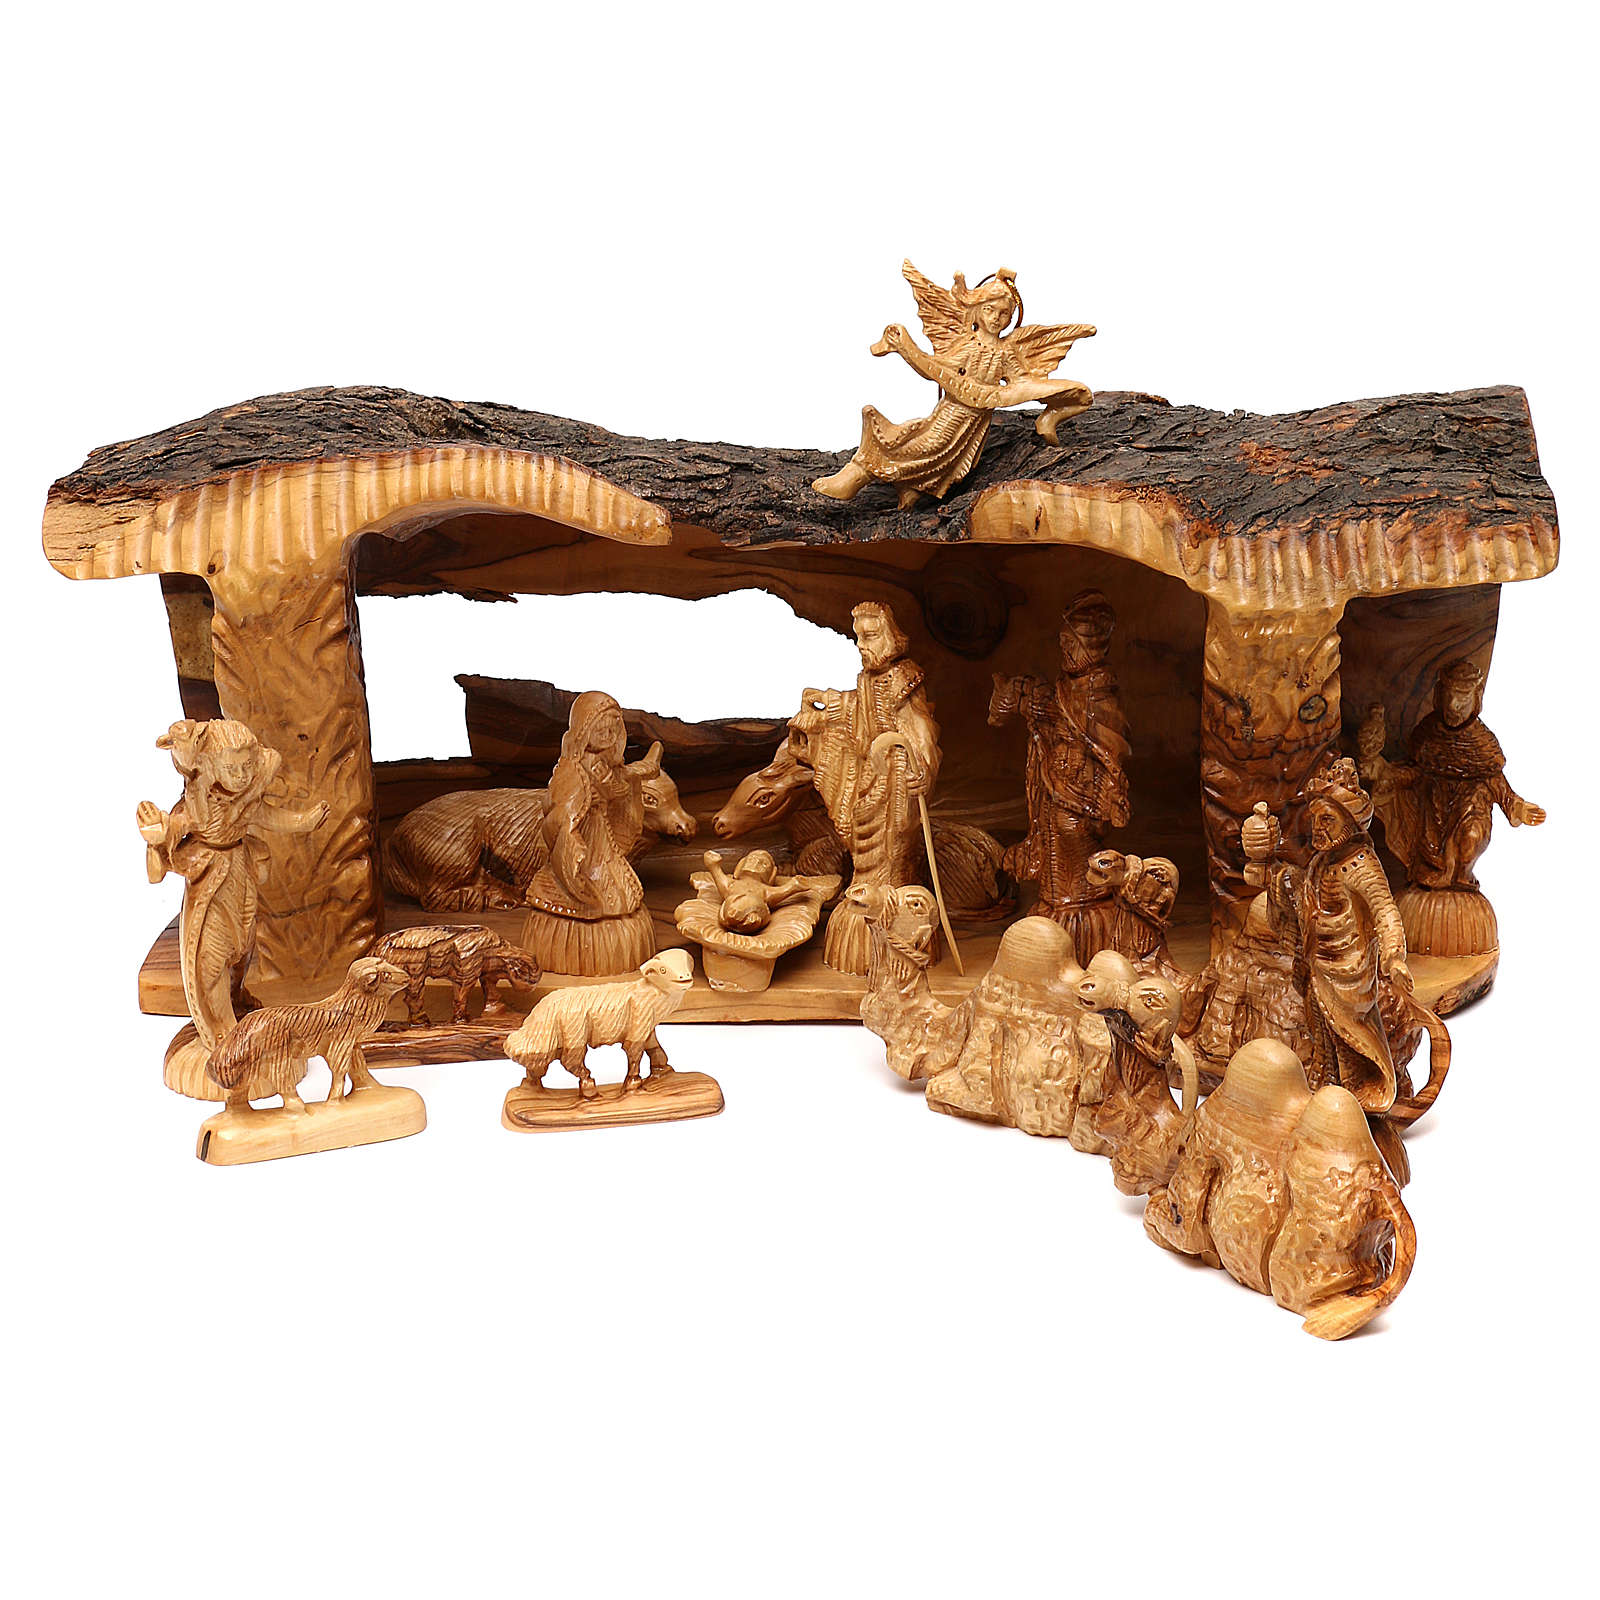 Nativity scene with cave in Bethlehem olive wood 20x50x15 cm 4